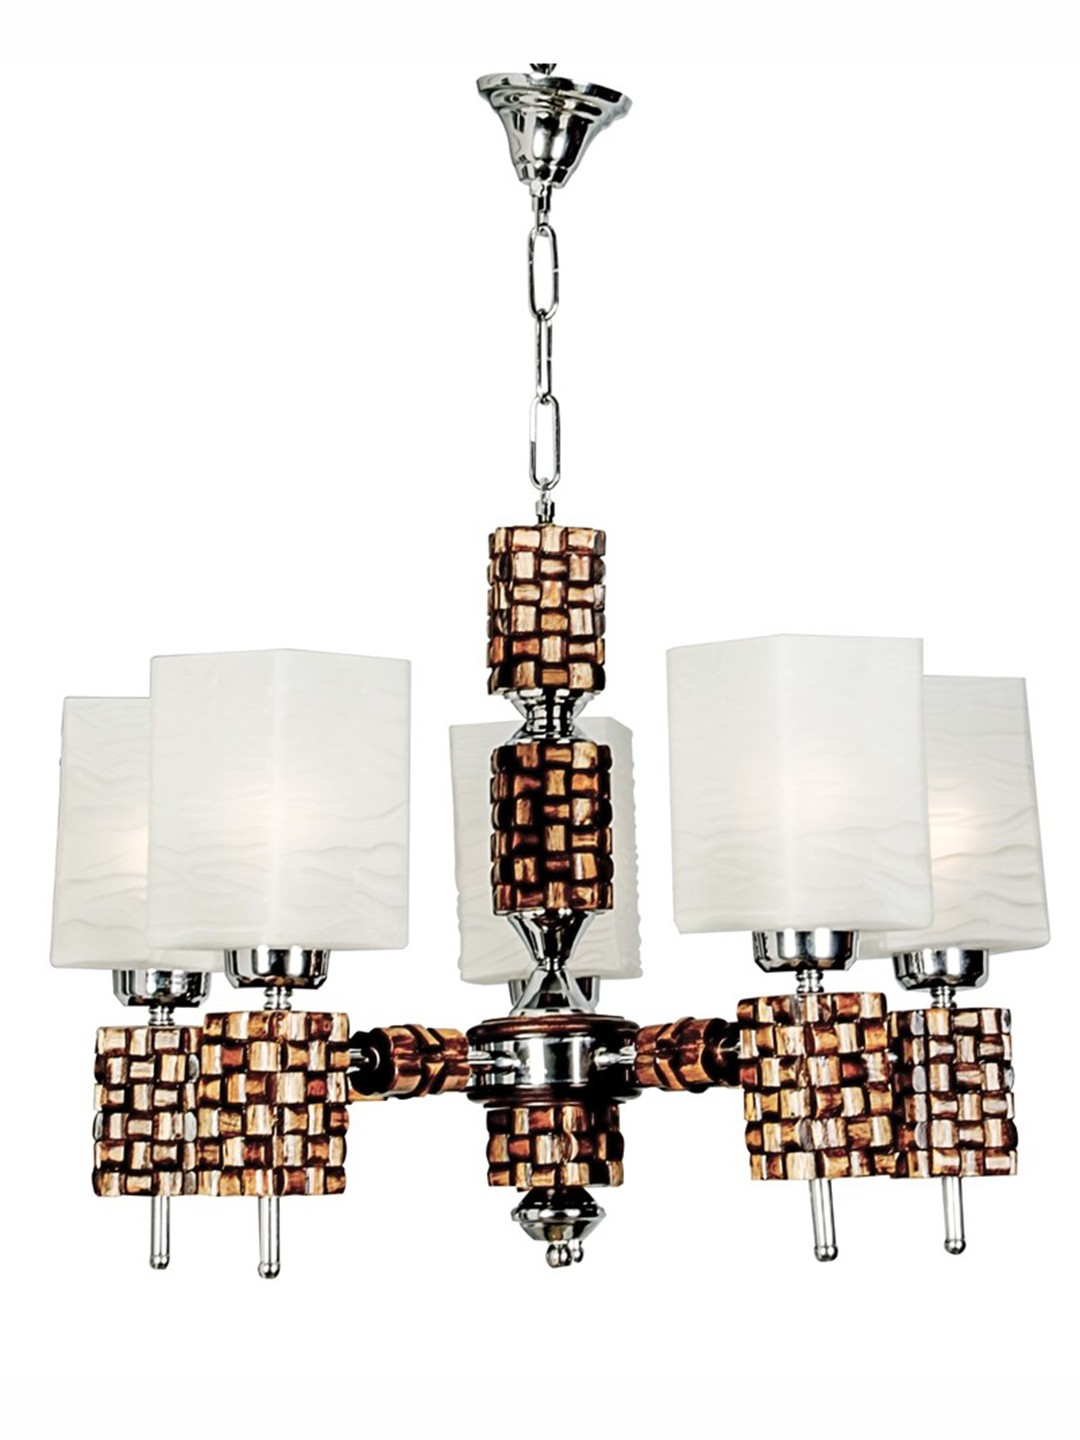 Rolex Square Wooden Chandelier